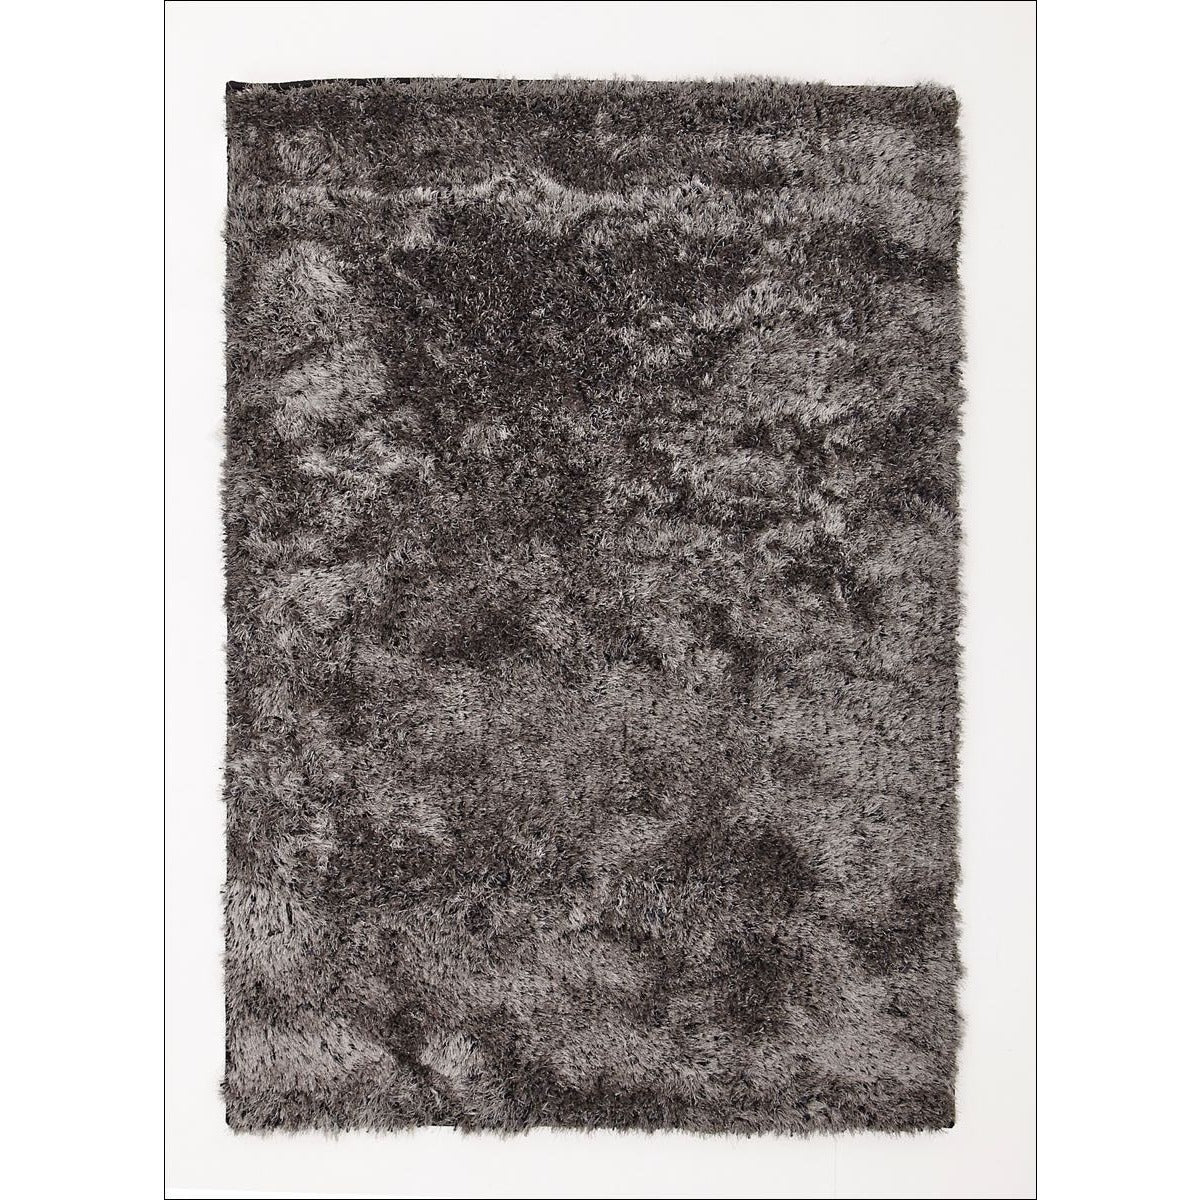 buy shaggy rugs online  shag rugs australia  shaggy rug  shag  - sale twilight shag rug  charcoal modern shaggy rug  rugs of beauty